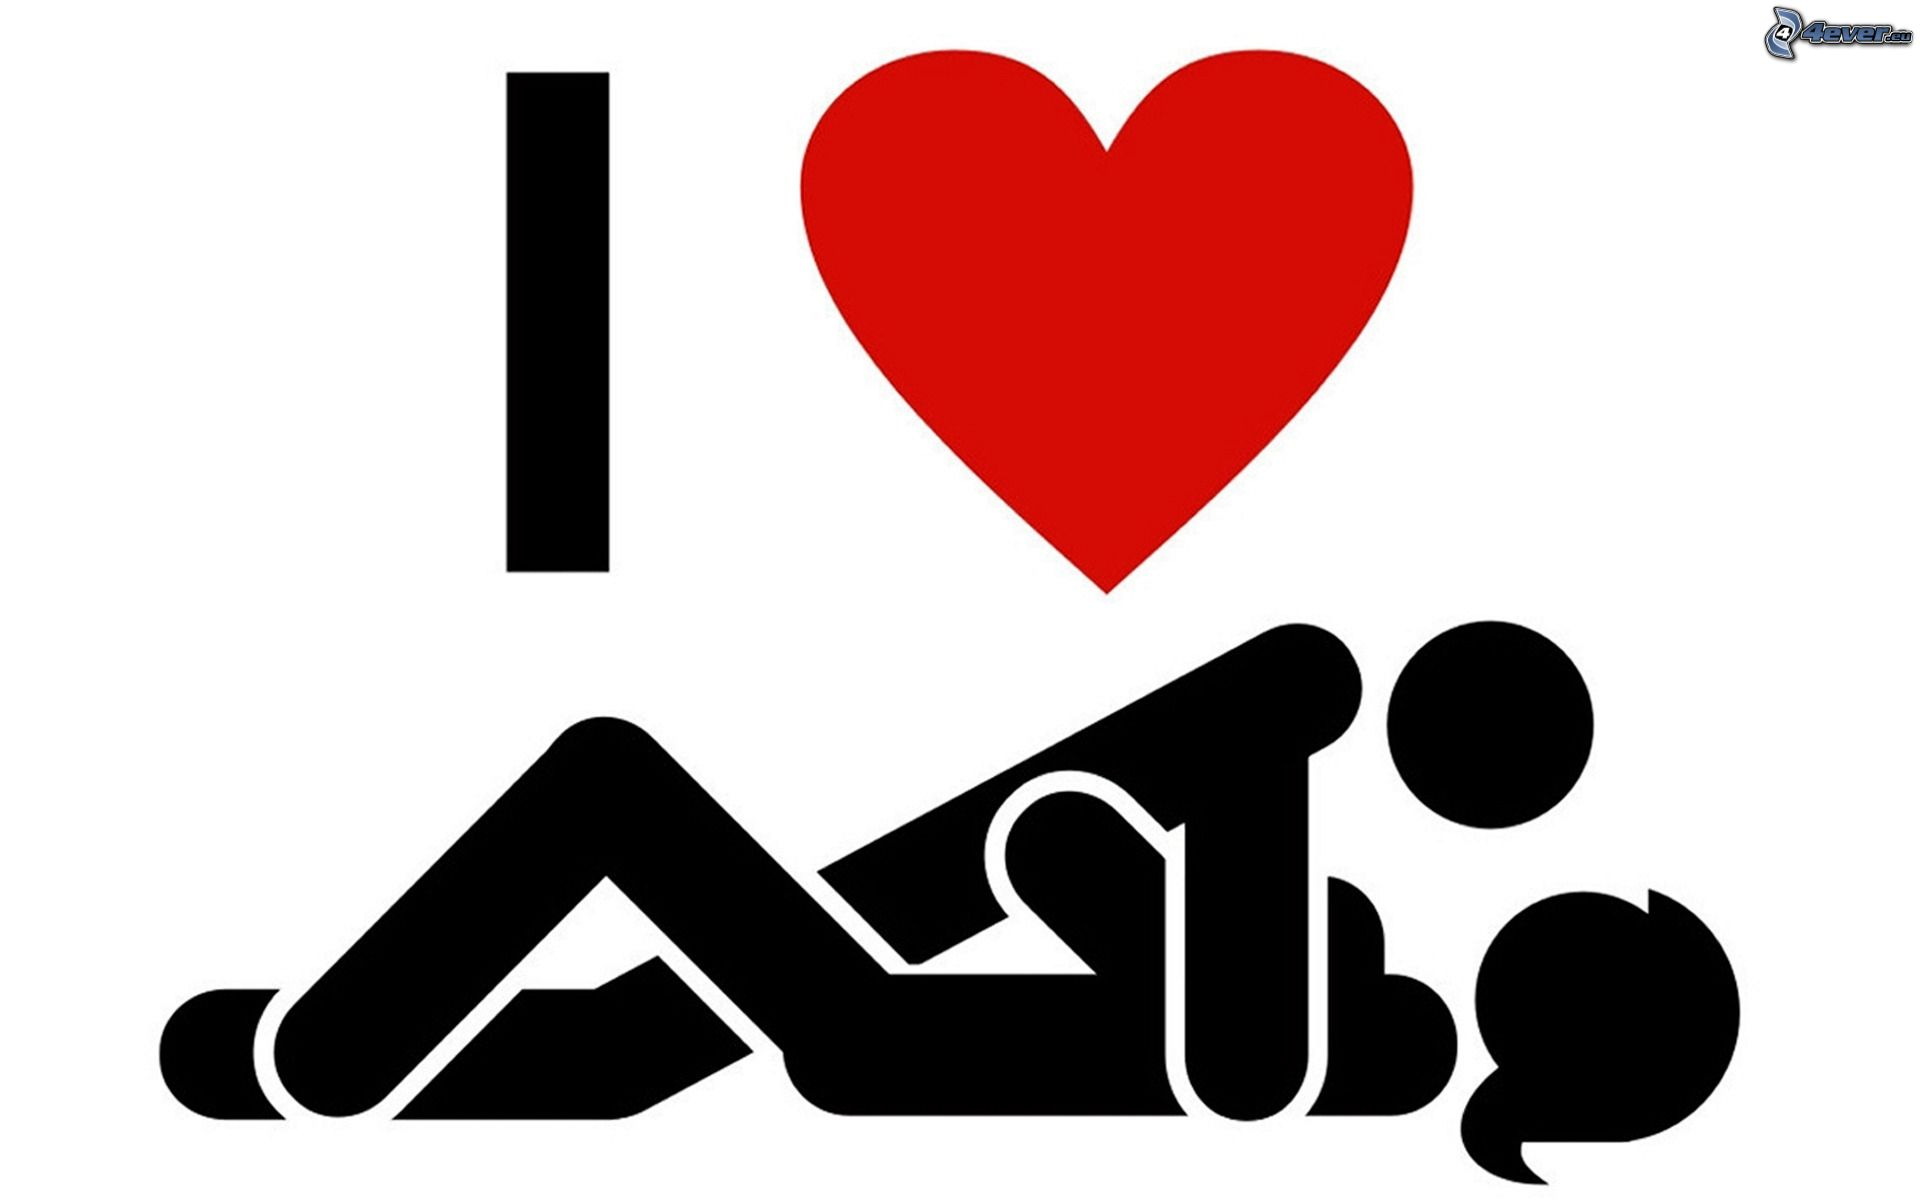 Download picture: http://pictures.4ever.eu/logos/i-love-sex-156146